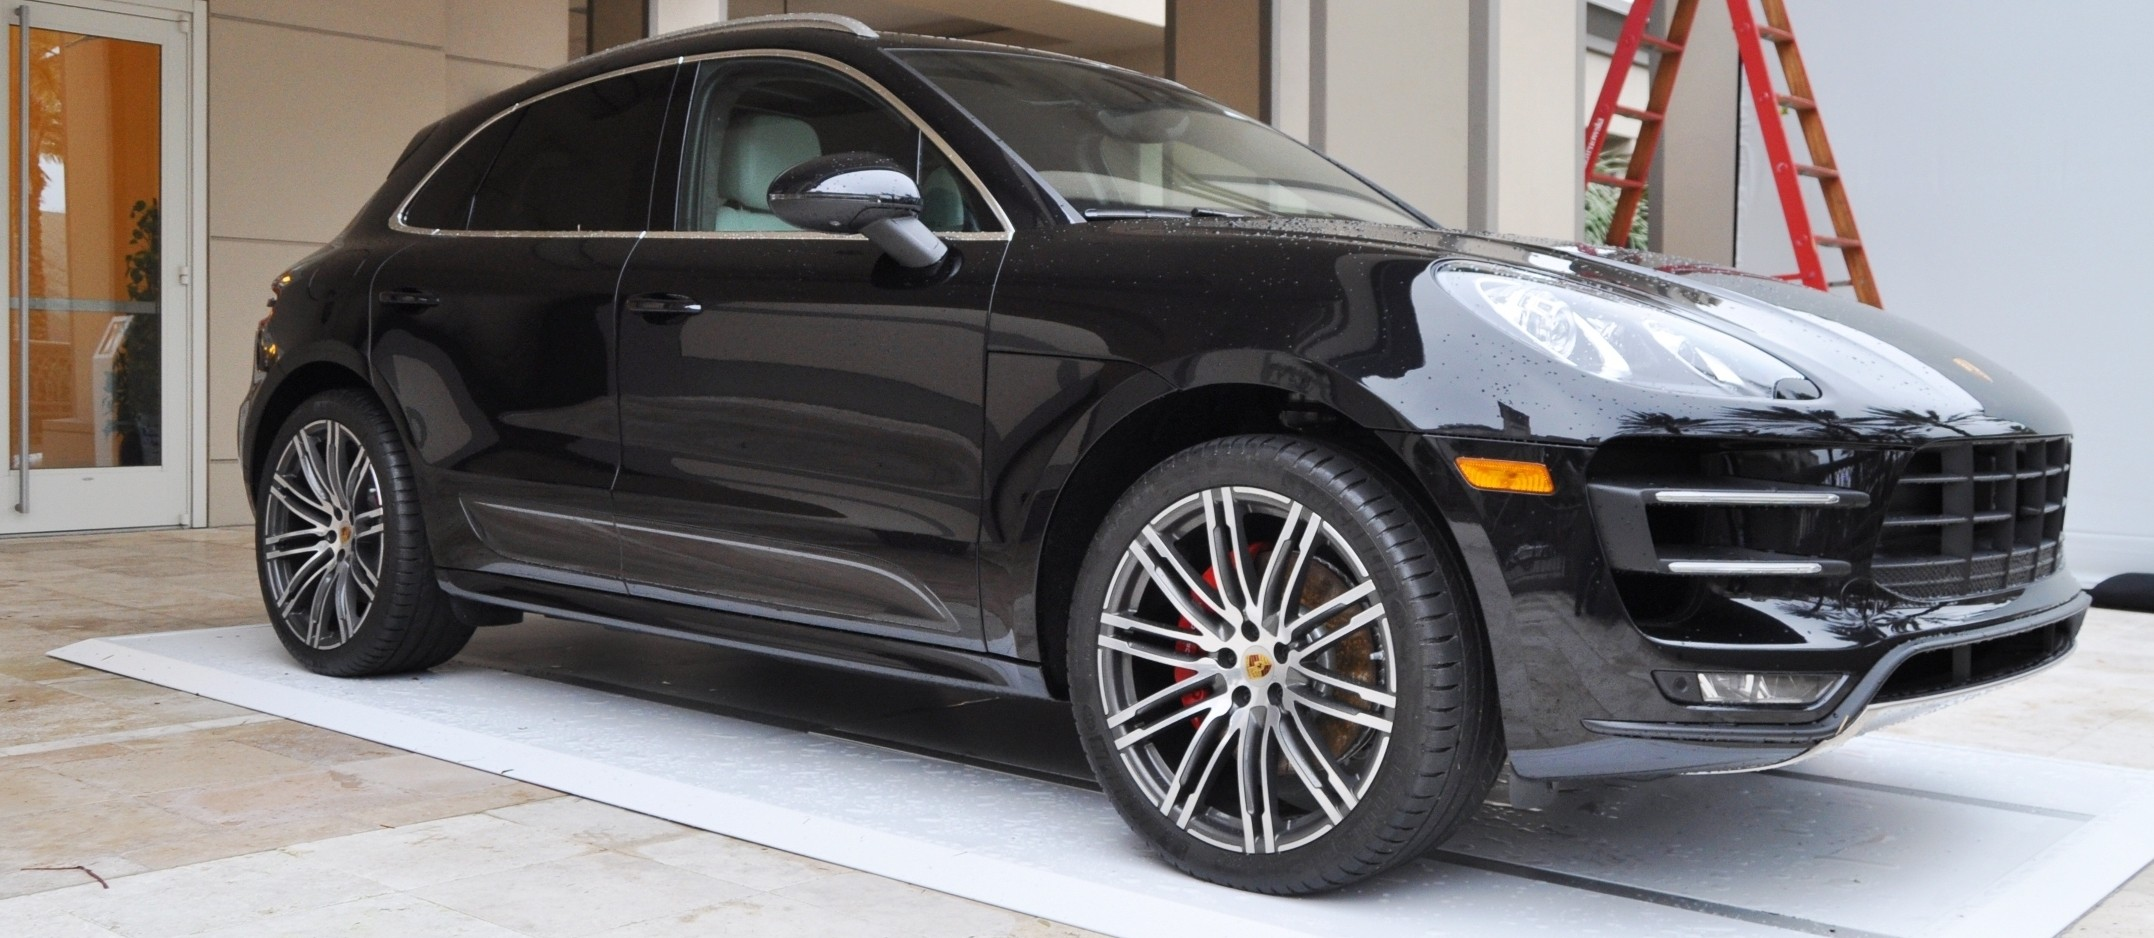 2015 Porsche Macan Turbo -- Looking Amazing, Athletic and Nimble -- 50+ Real-Life Photos Inside and Out 2